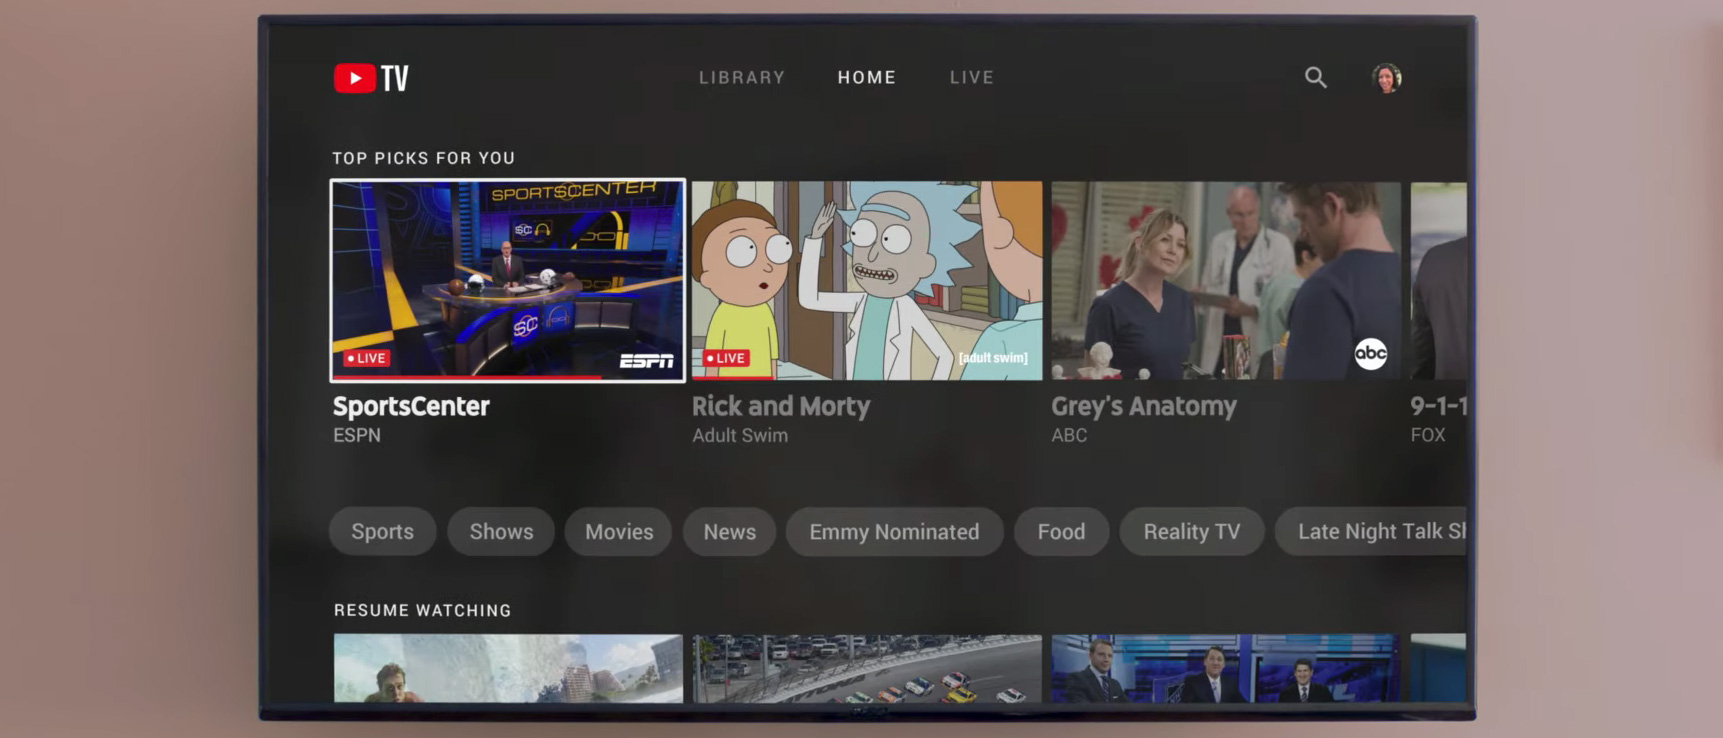 Youtube Tv Review A Reasonably Priced Cable Tv Alternative Tom S Guide